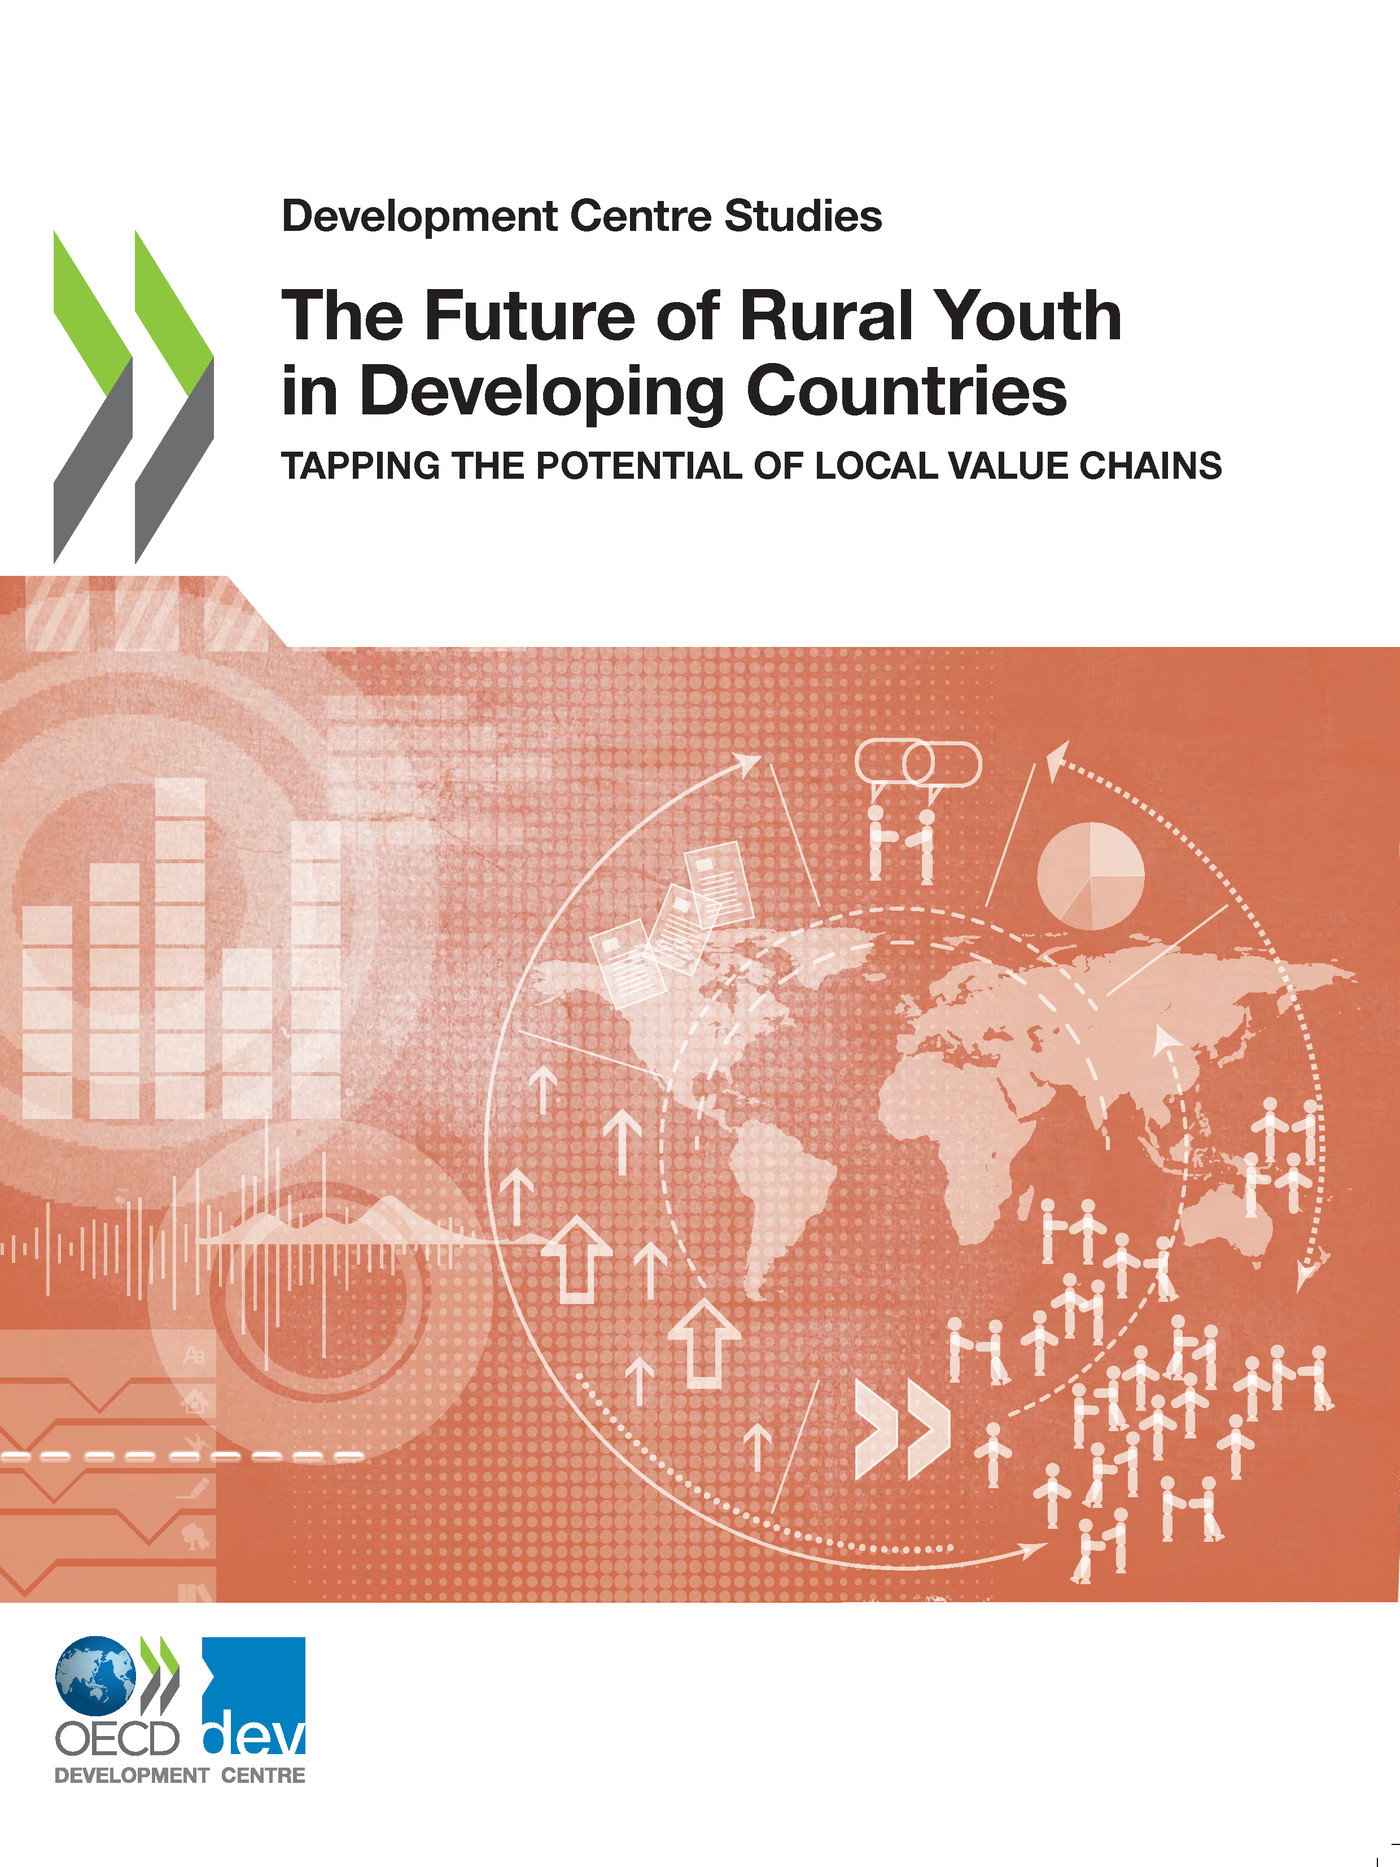 The Future of Rural Youth in Developing Countries De  Collectif - OCDE / OECD